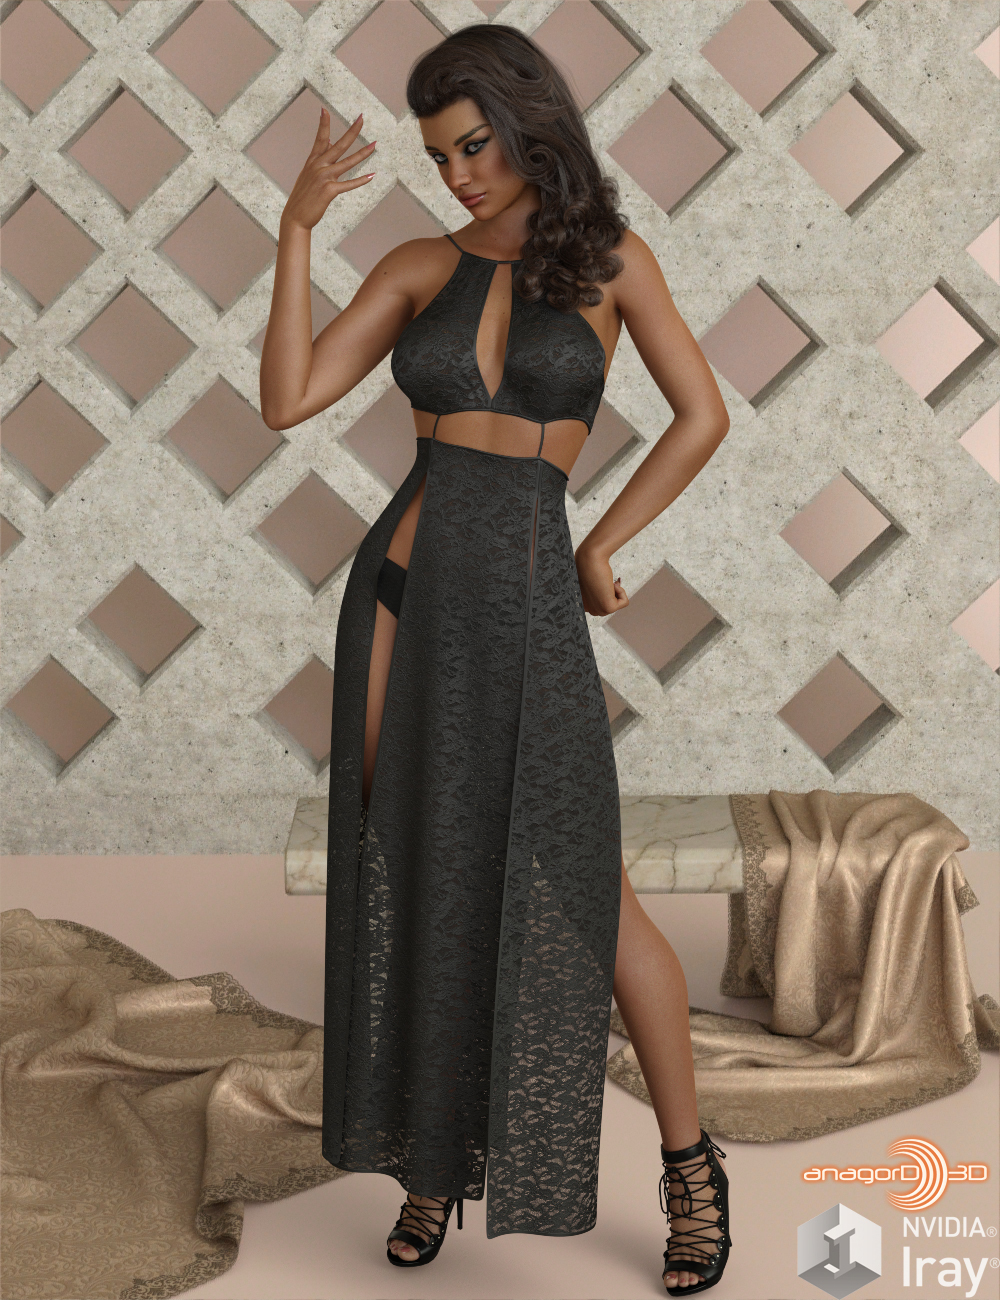 VERSUS - dForce Sexy Loin Dress 4 for Genesis 8 Females by Anagord